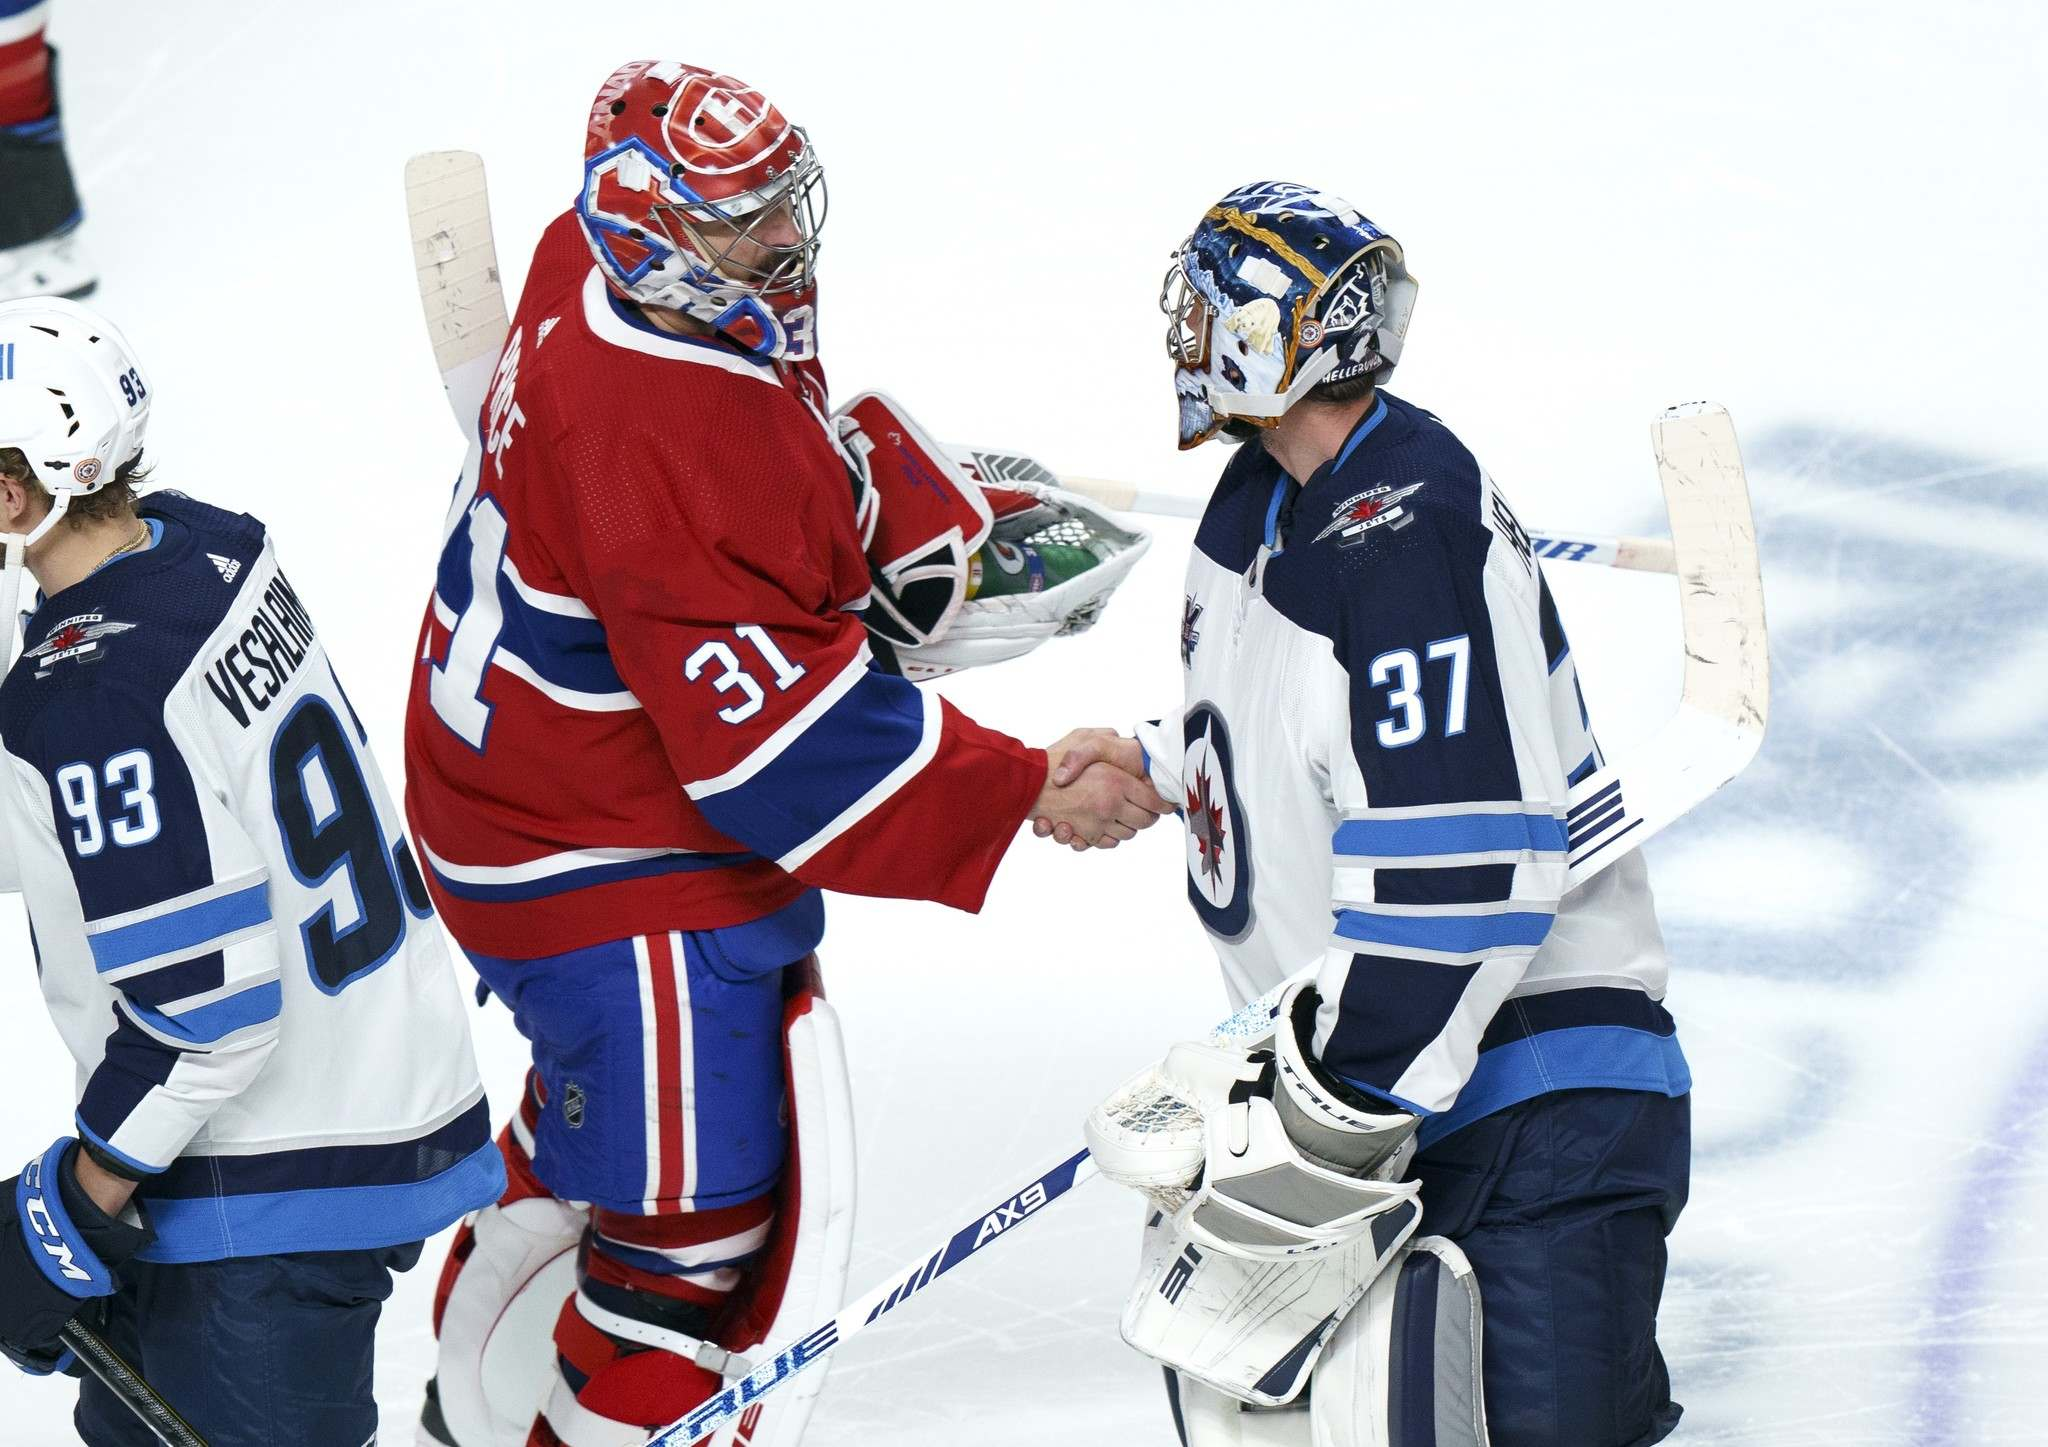 Montreal Canadiens goaltender Carey Price shakes hands with his Winnipeg Jets counterpart Connor Hellebuyck after the Jets were knocked out of the playoffs to end their season. (Paul Chiasson / The Canadian Press files)</p>